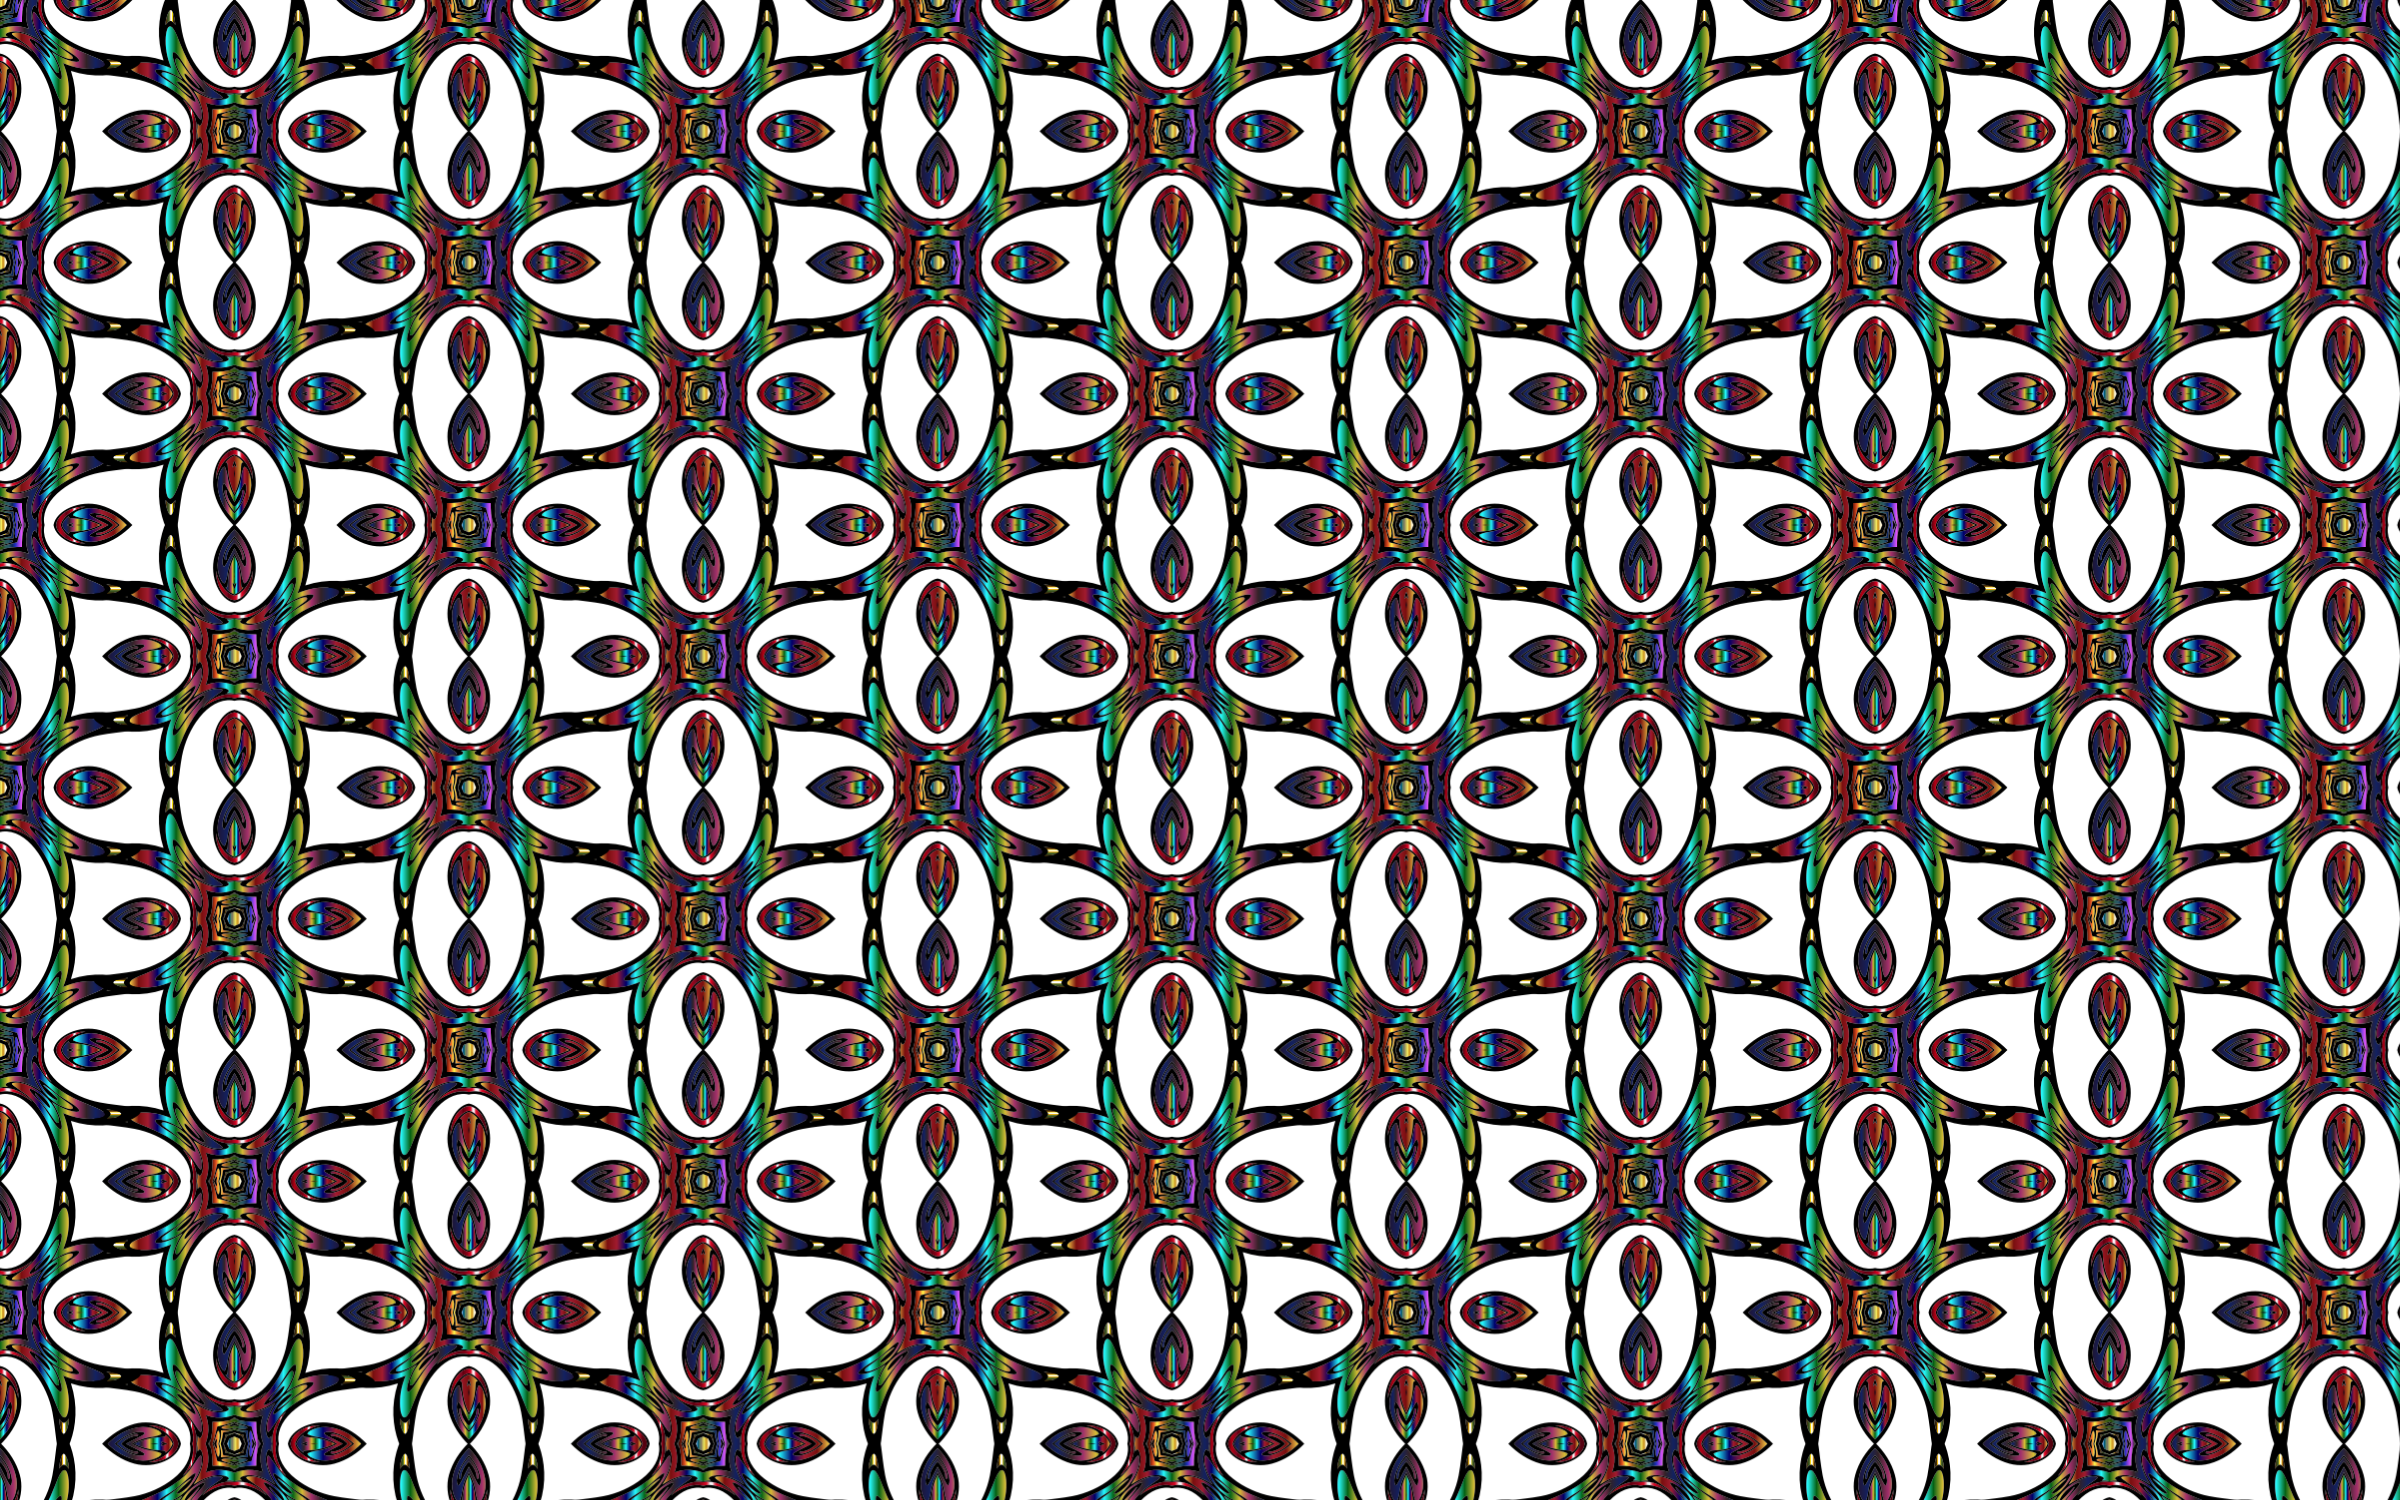 Prismatic Iridescence Seamless Pattern 2 by GDJ